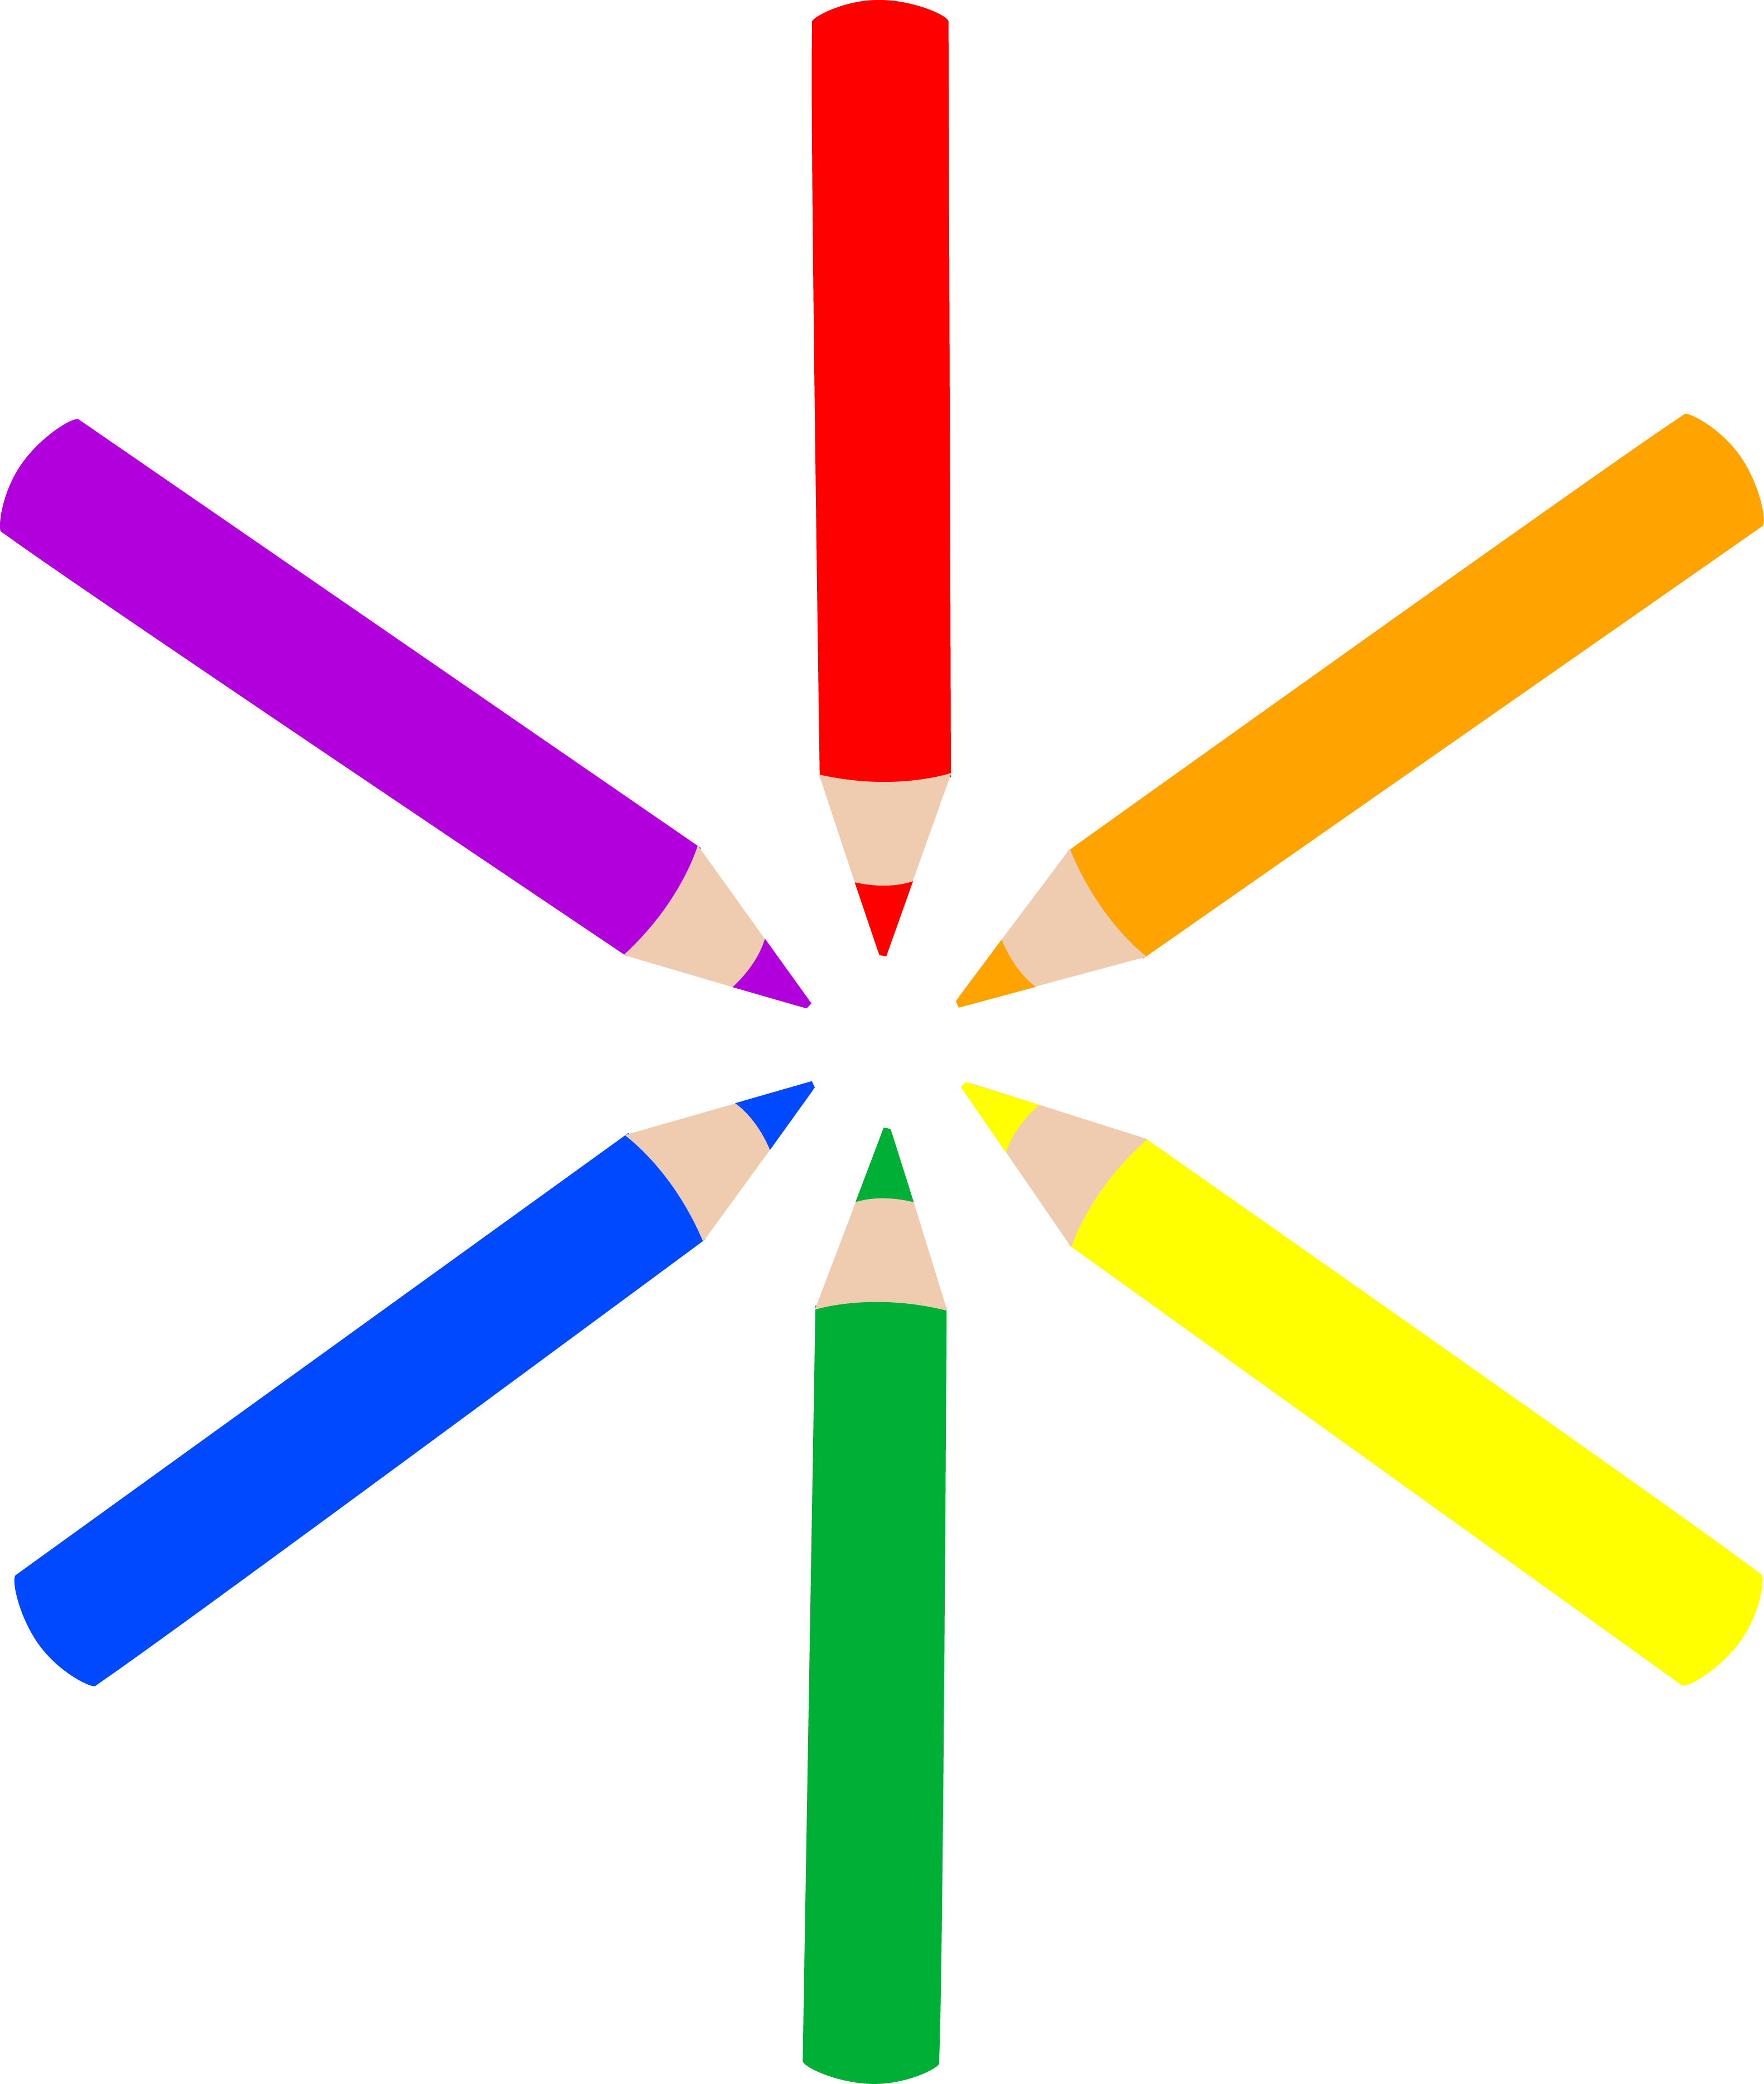 Circle clipart colored. Pattern of mini pencils